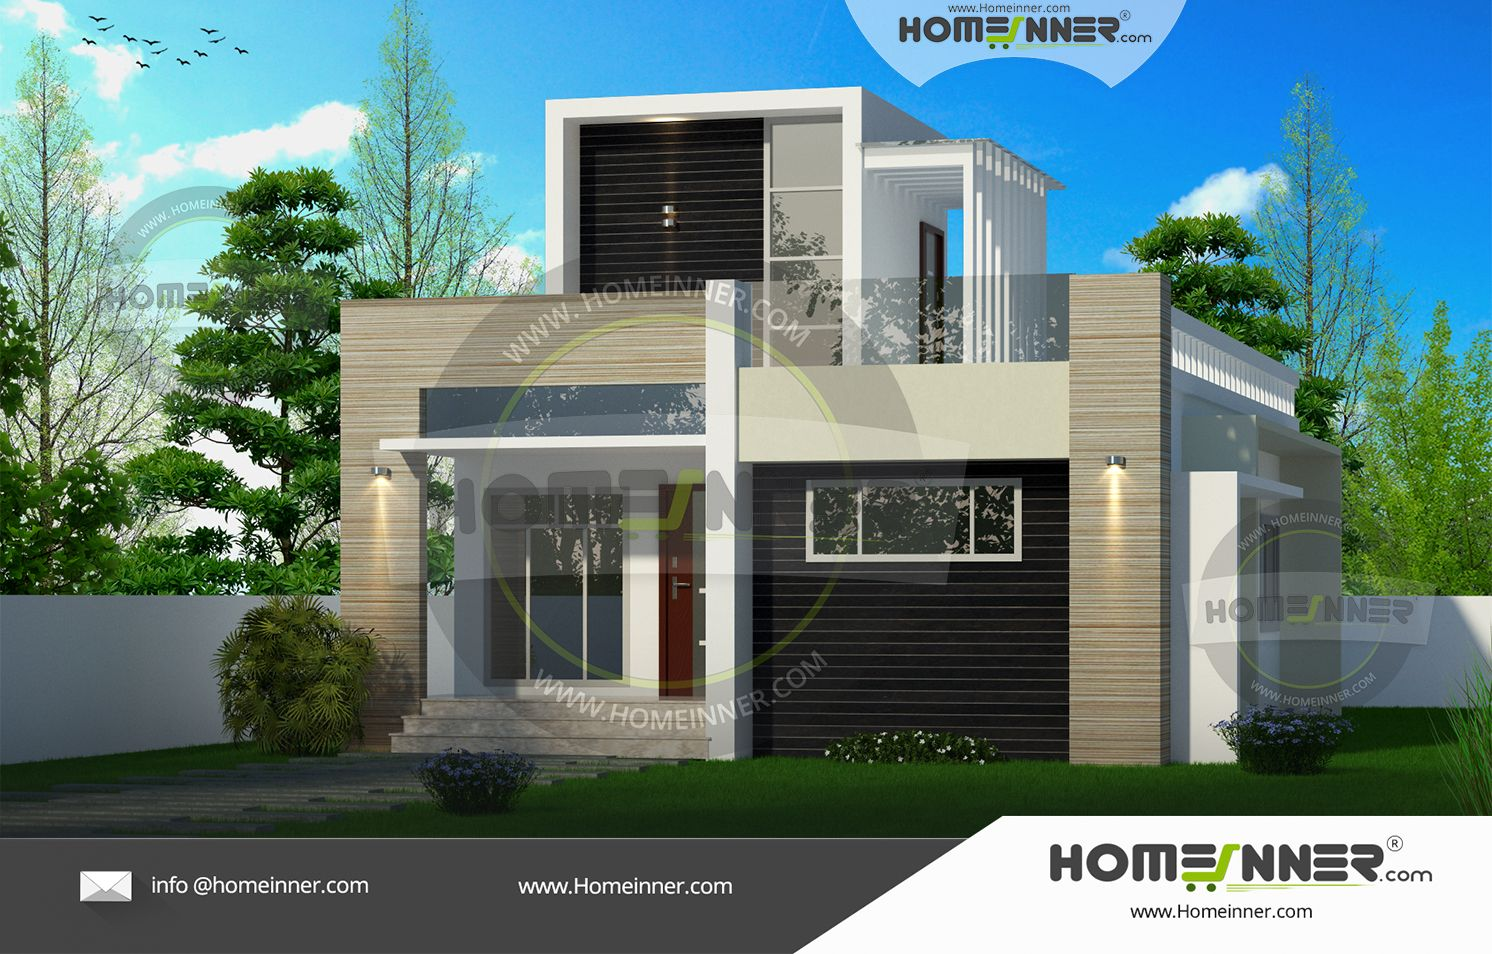 Homeinner Leading Home Design Studio Small House Design House Architecture Design Small House Design Simple